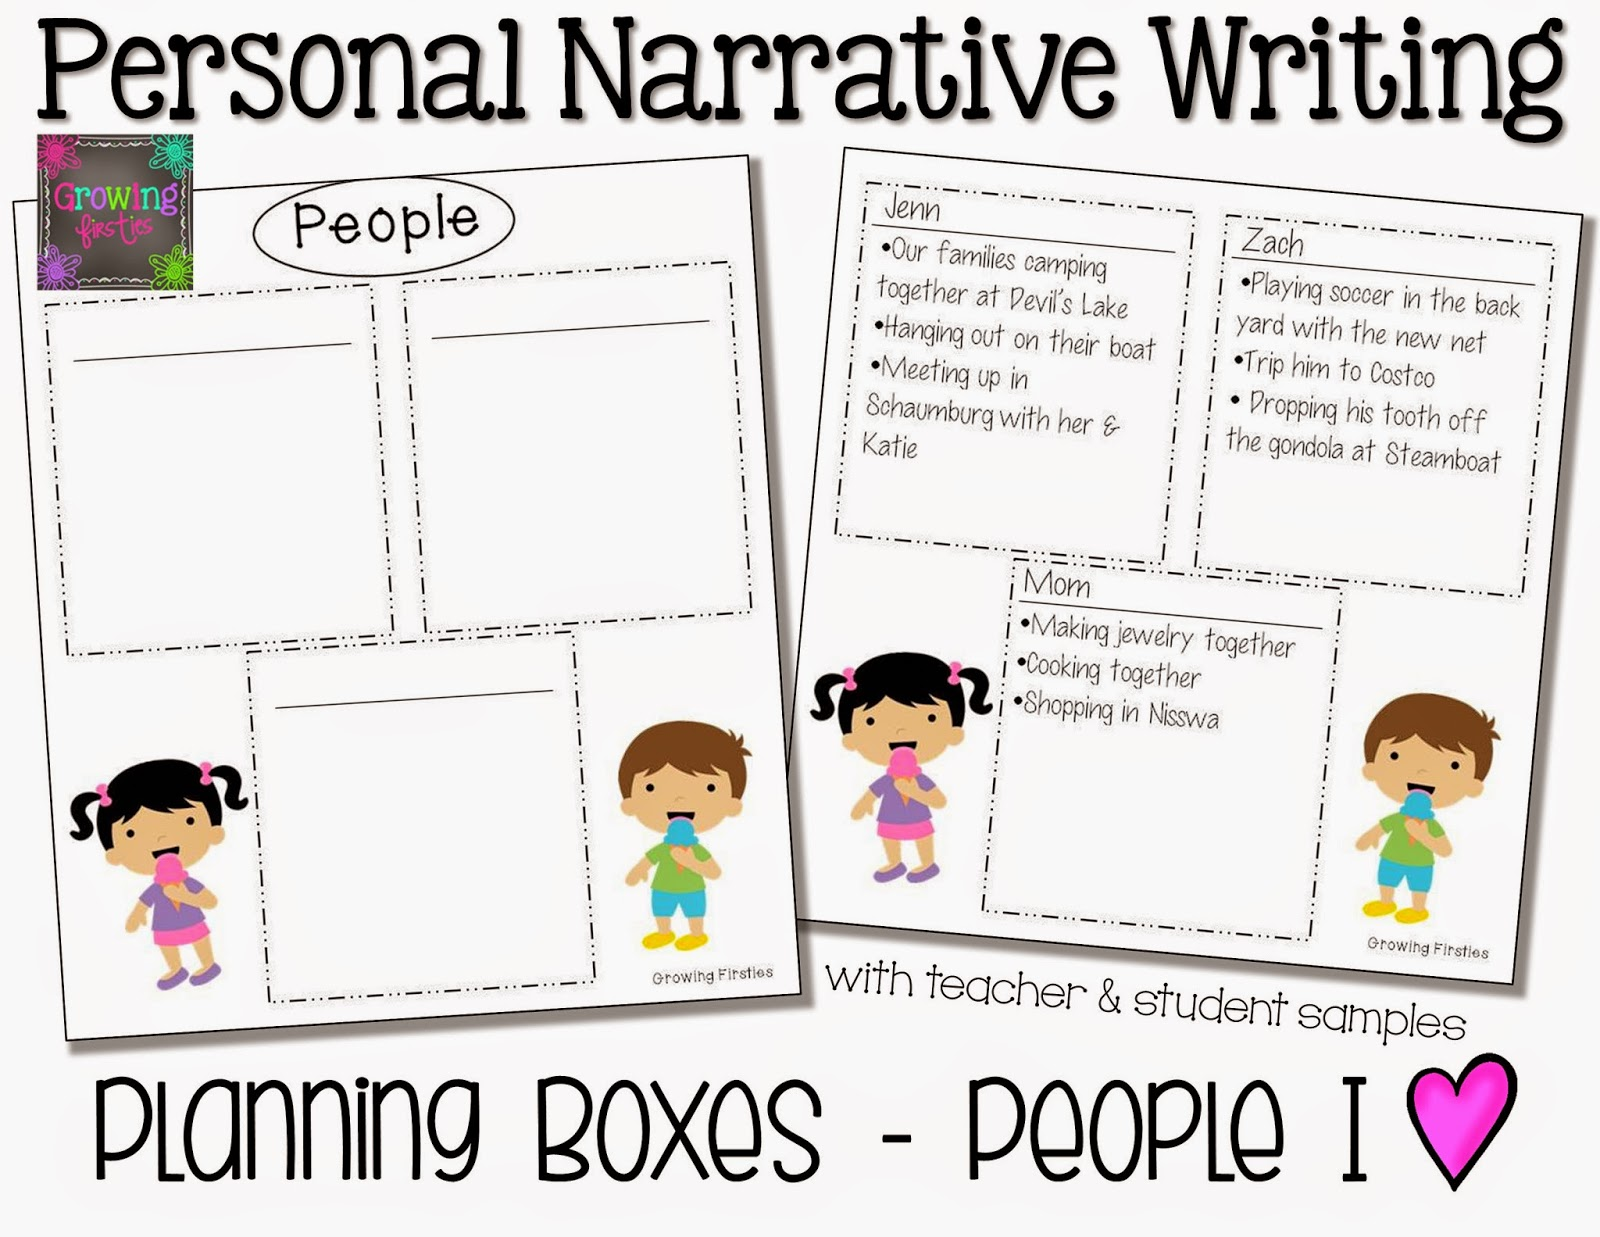 Personal narrative topics?